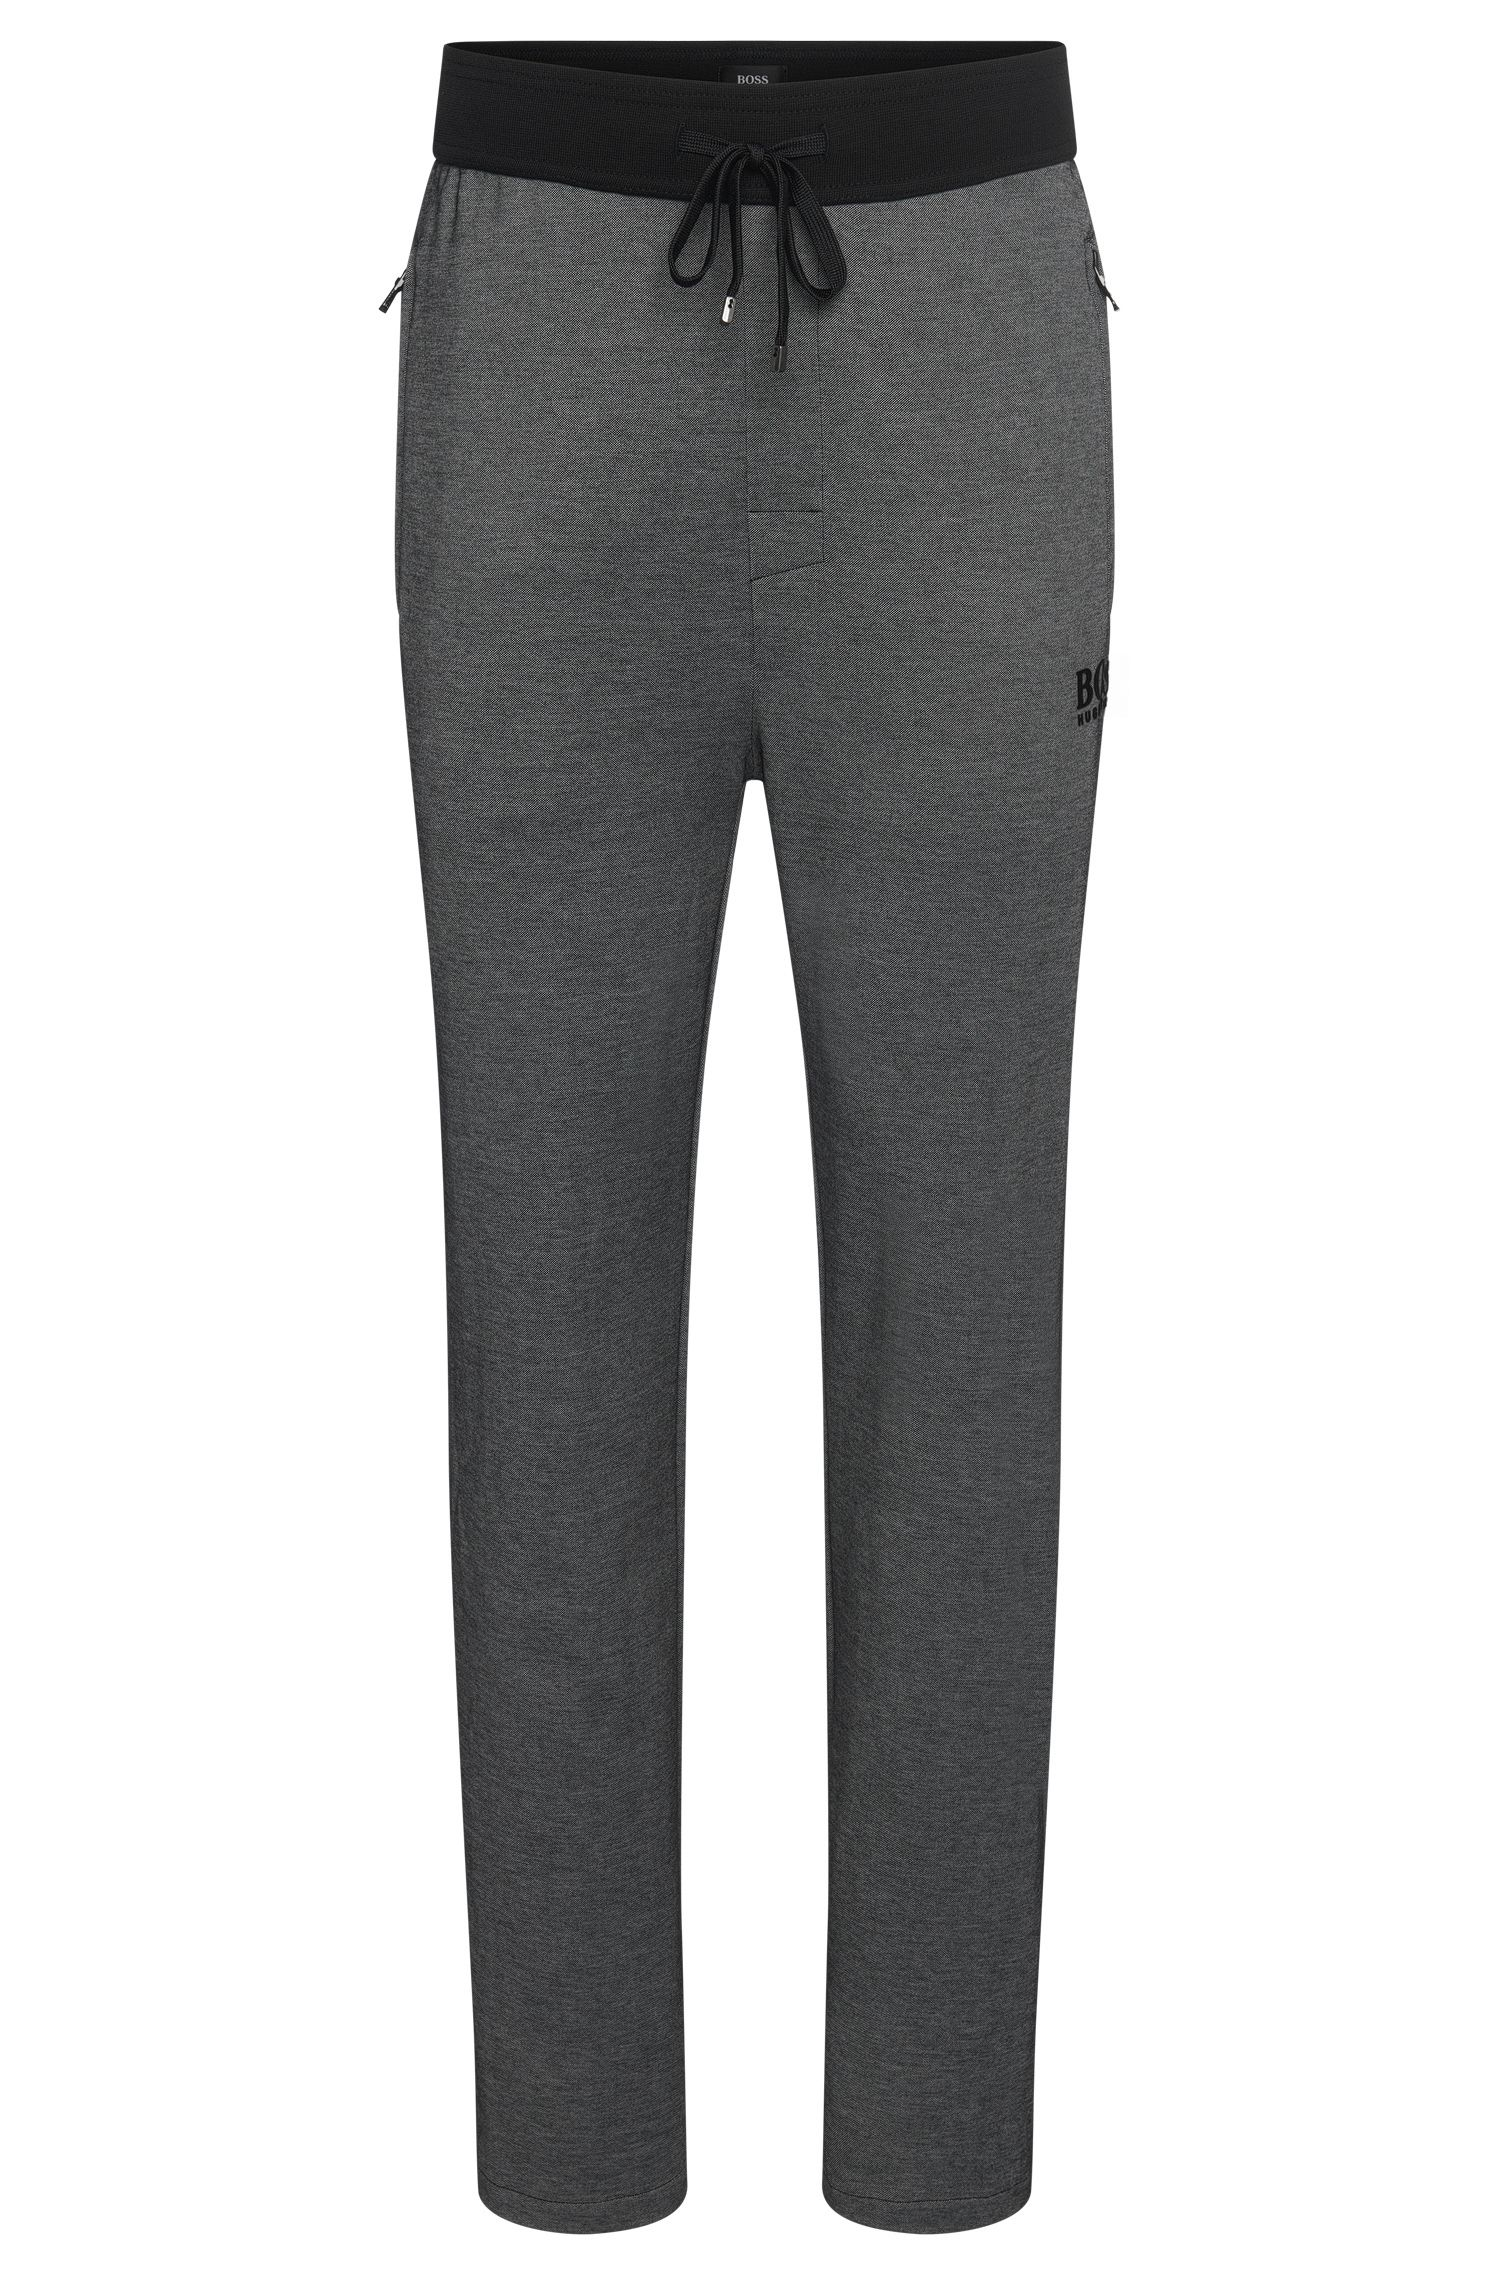 Pantaloni felpati in misto cotone con coulisse: 'Long Pant'